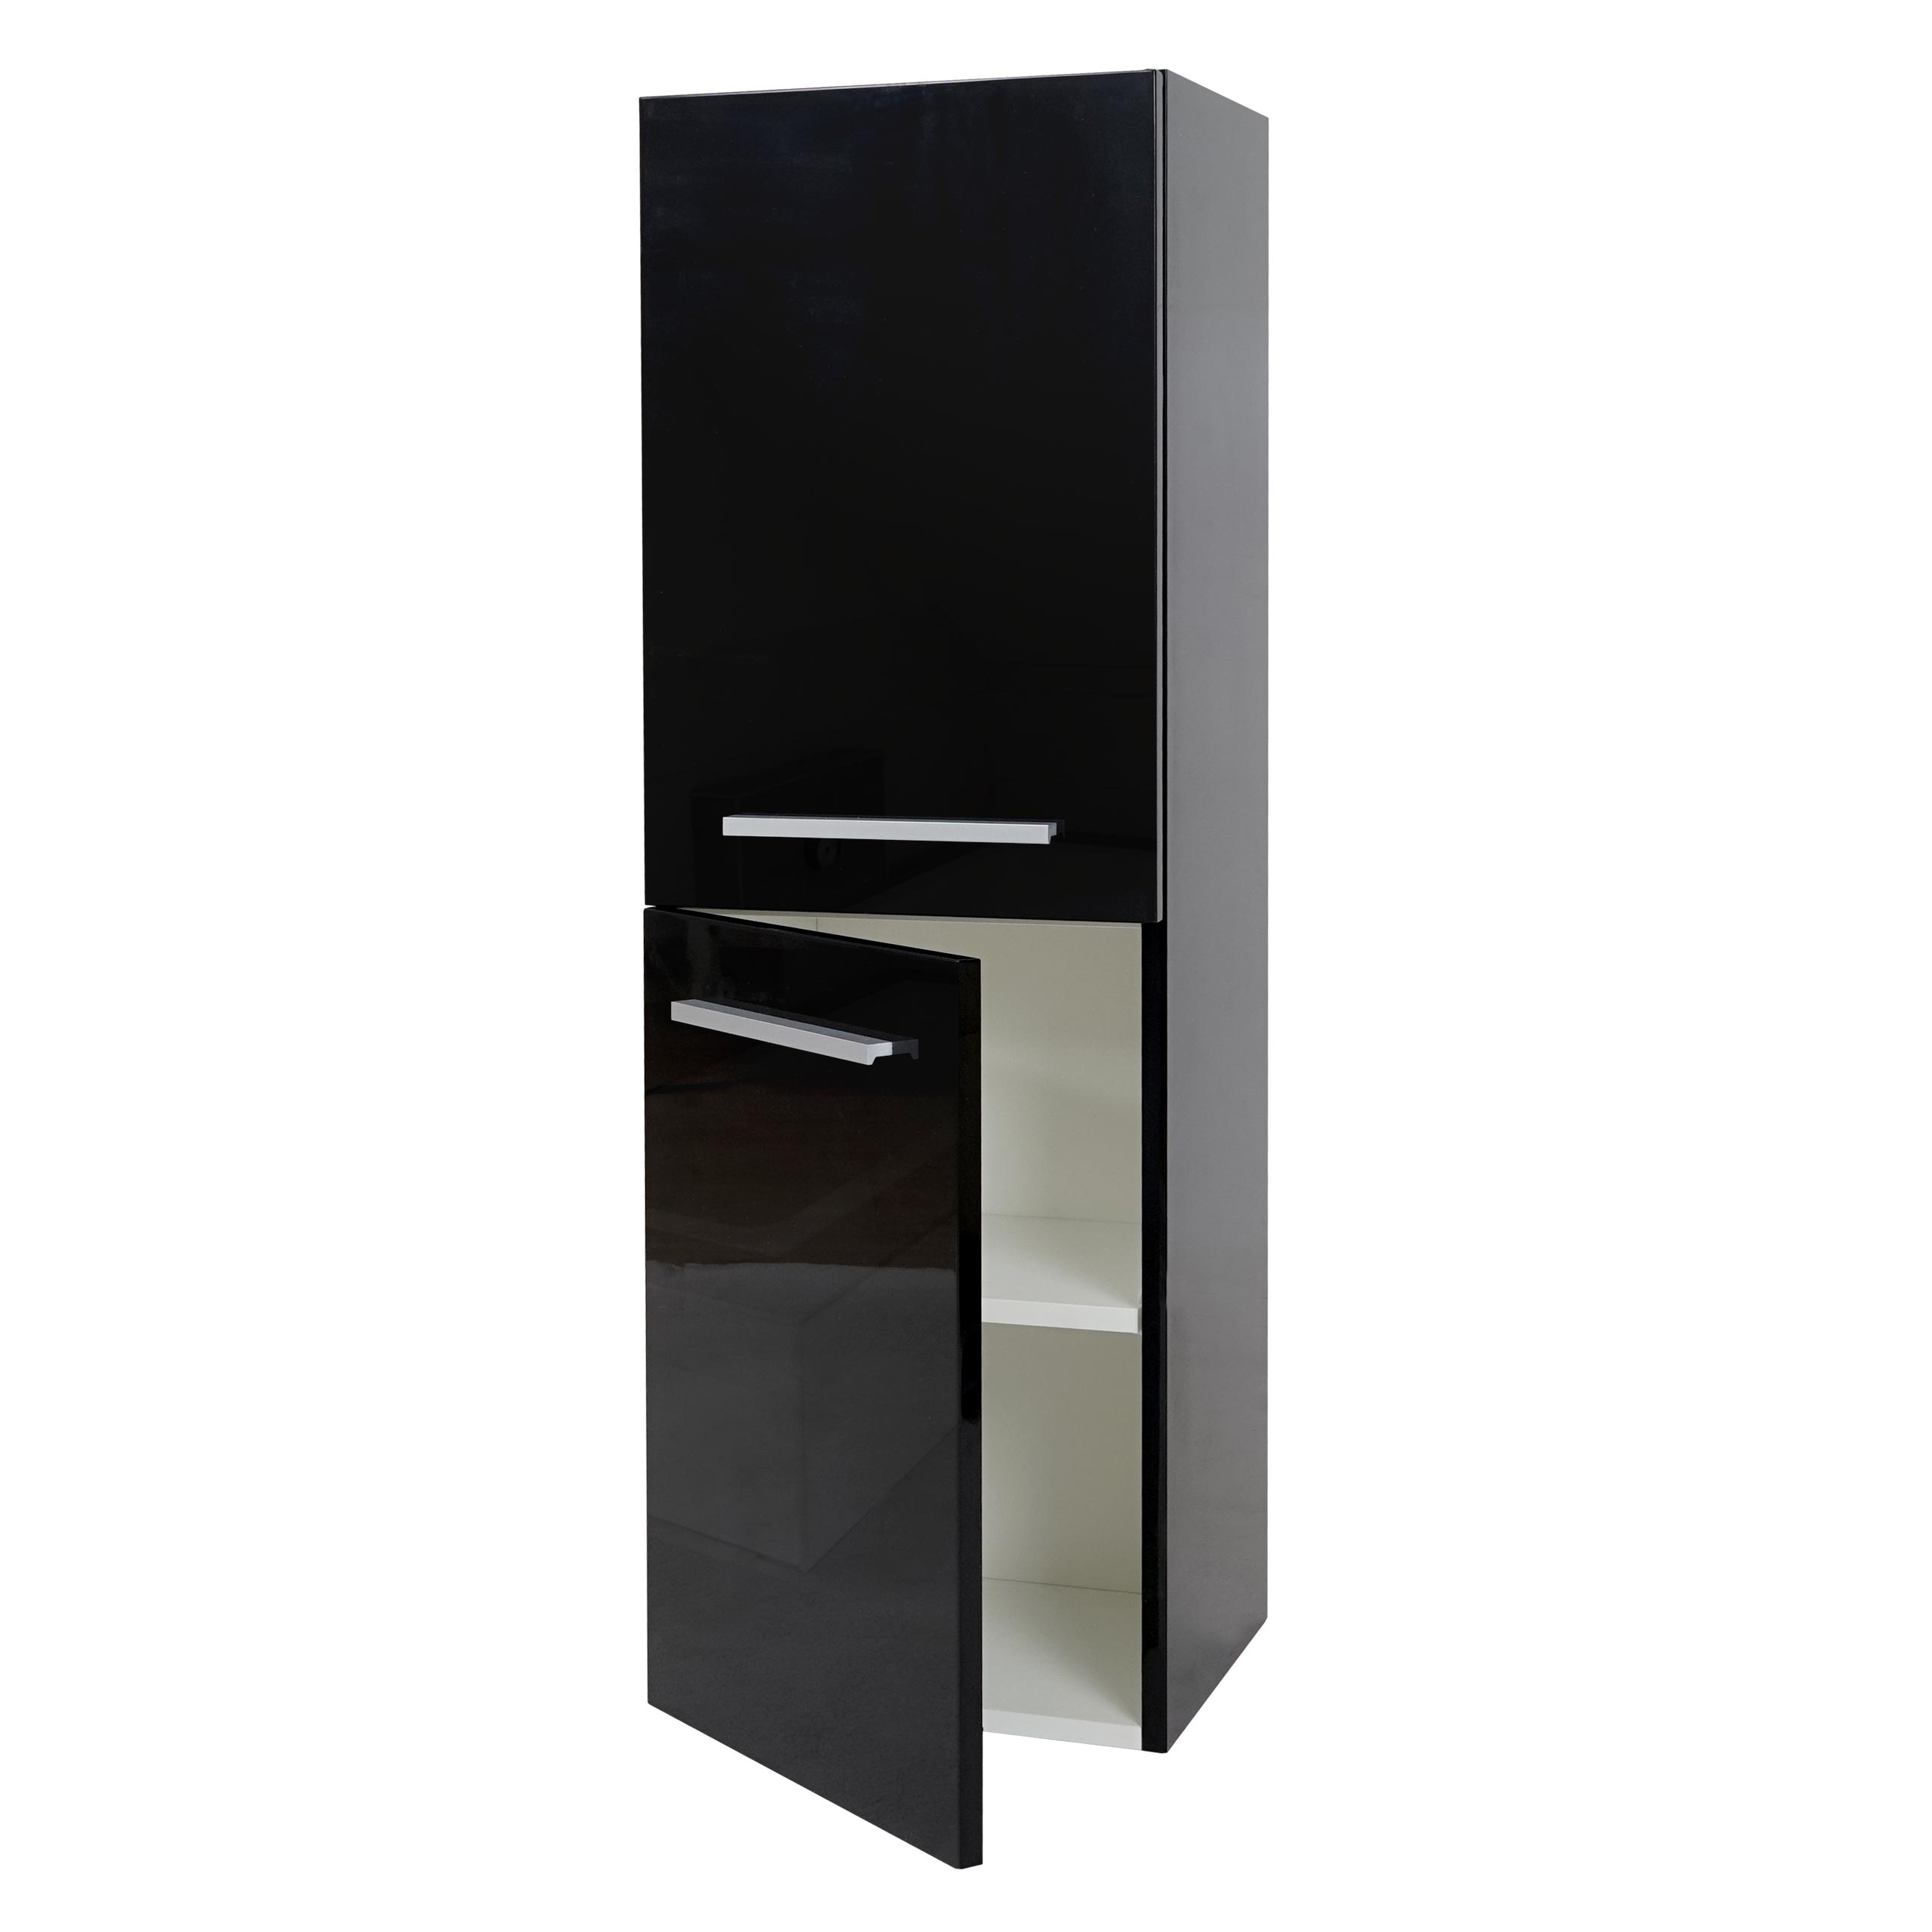 h ngeschrank hwc c11 midischrank badschrank badezimmer hochglanz 110x35cm ebay. Black Bedroom Furniture Sets. Home Design Ideas